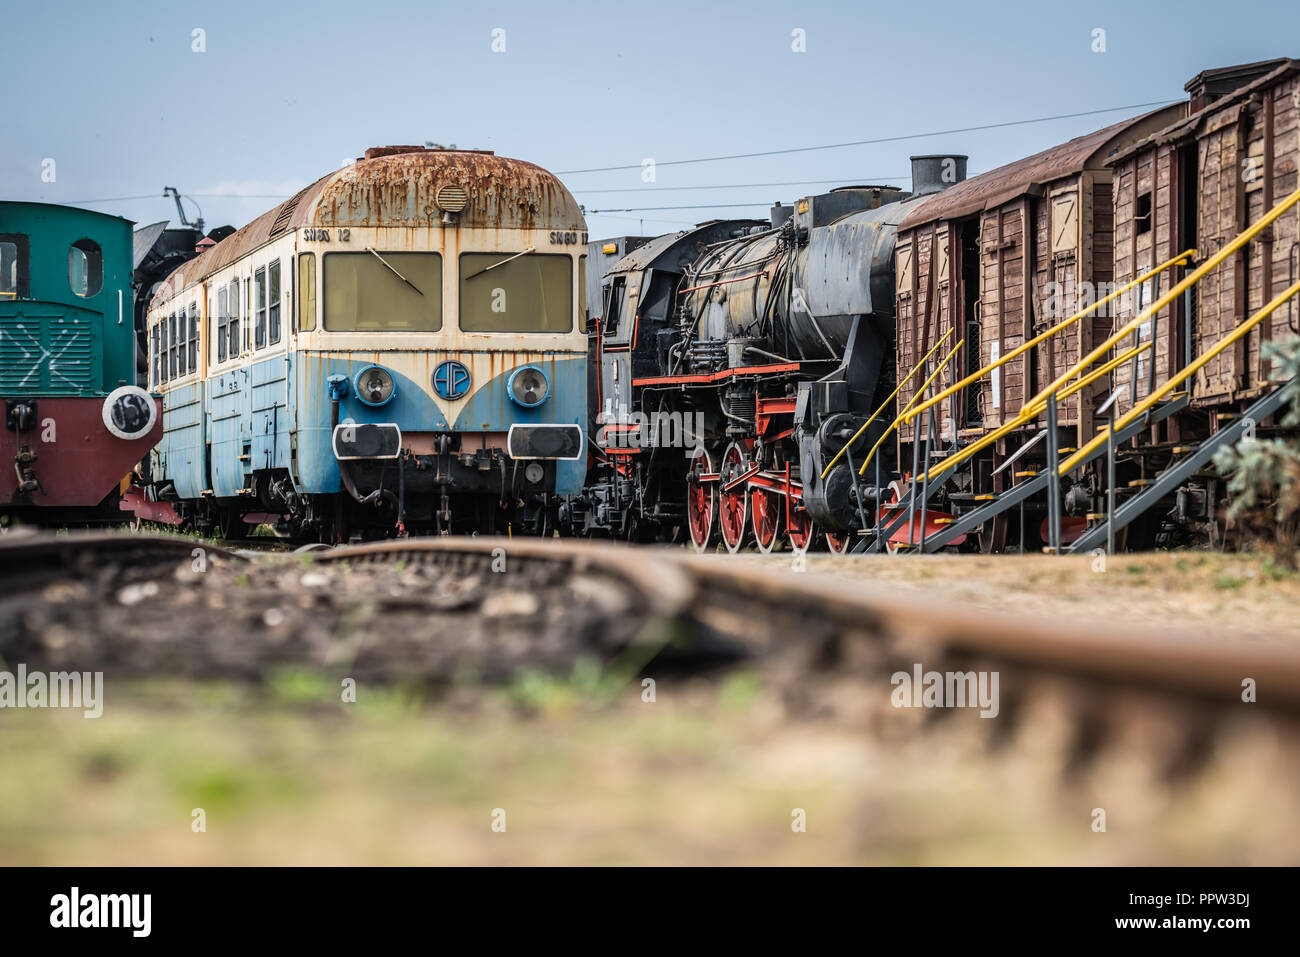 Jaworzyna Slaska, Poland - August 2018 : Old disused blue and yellow passenger train on the side track in the Museum of Industry and Railway in Silesi - Stock Image